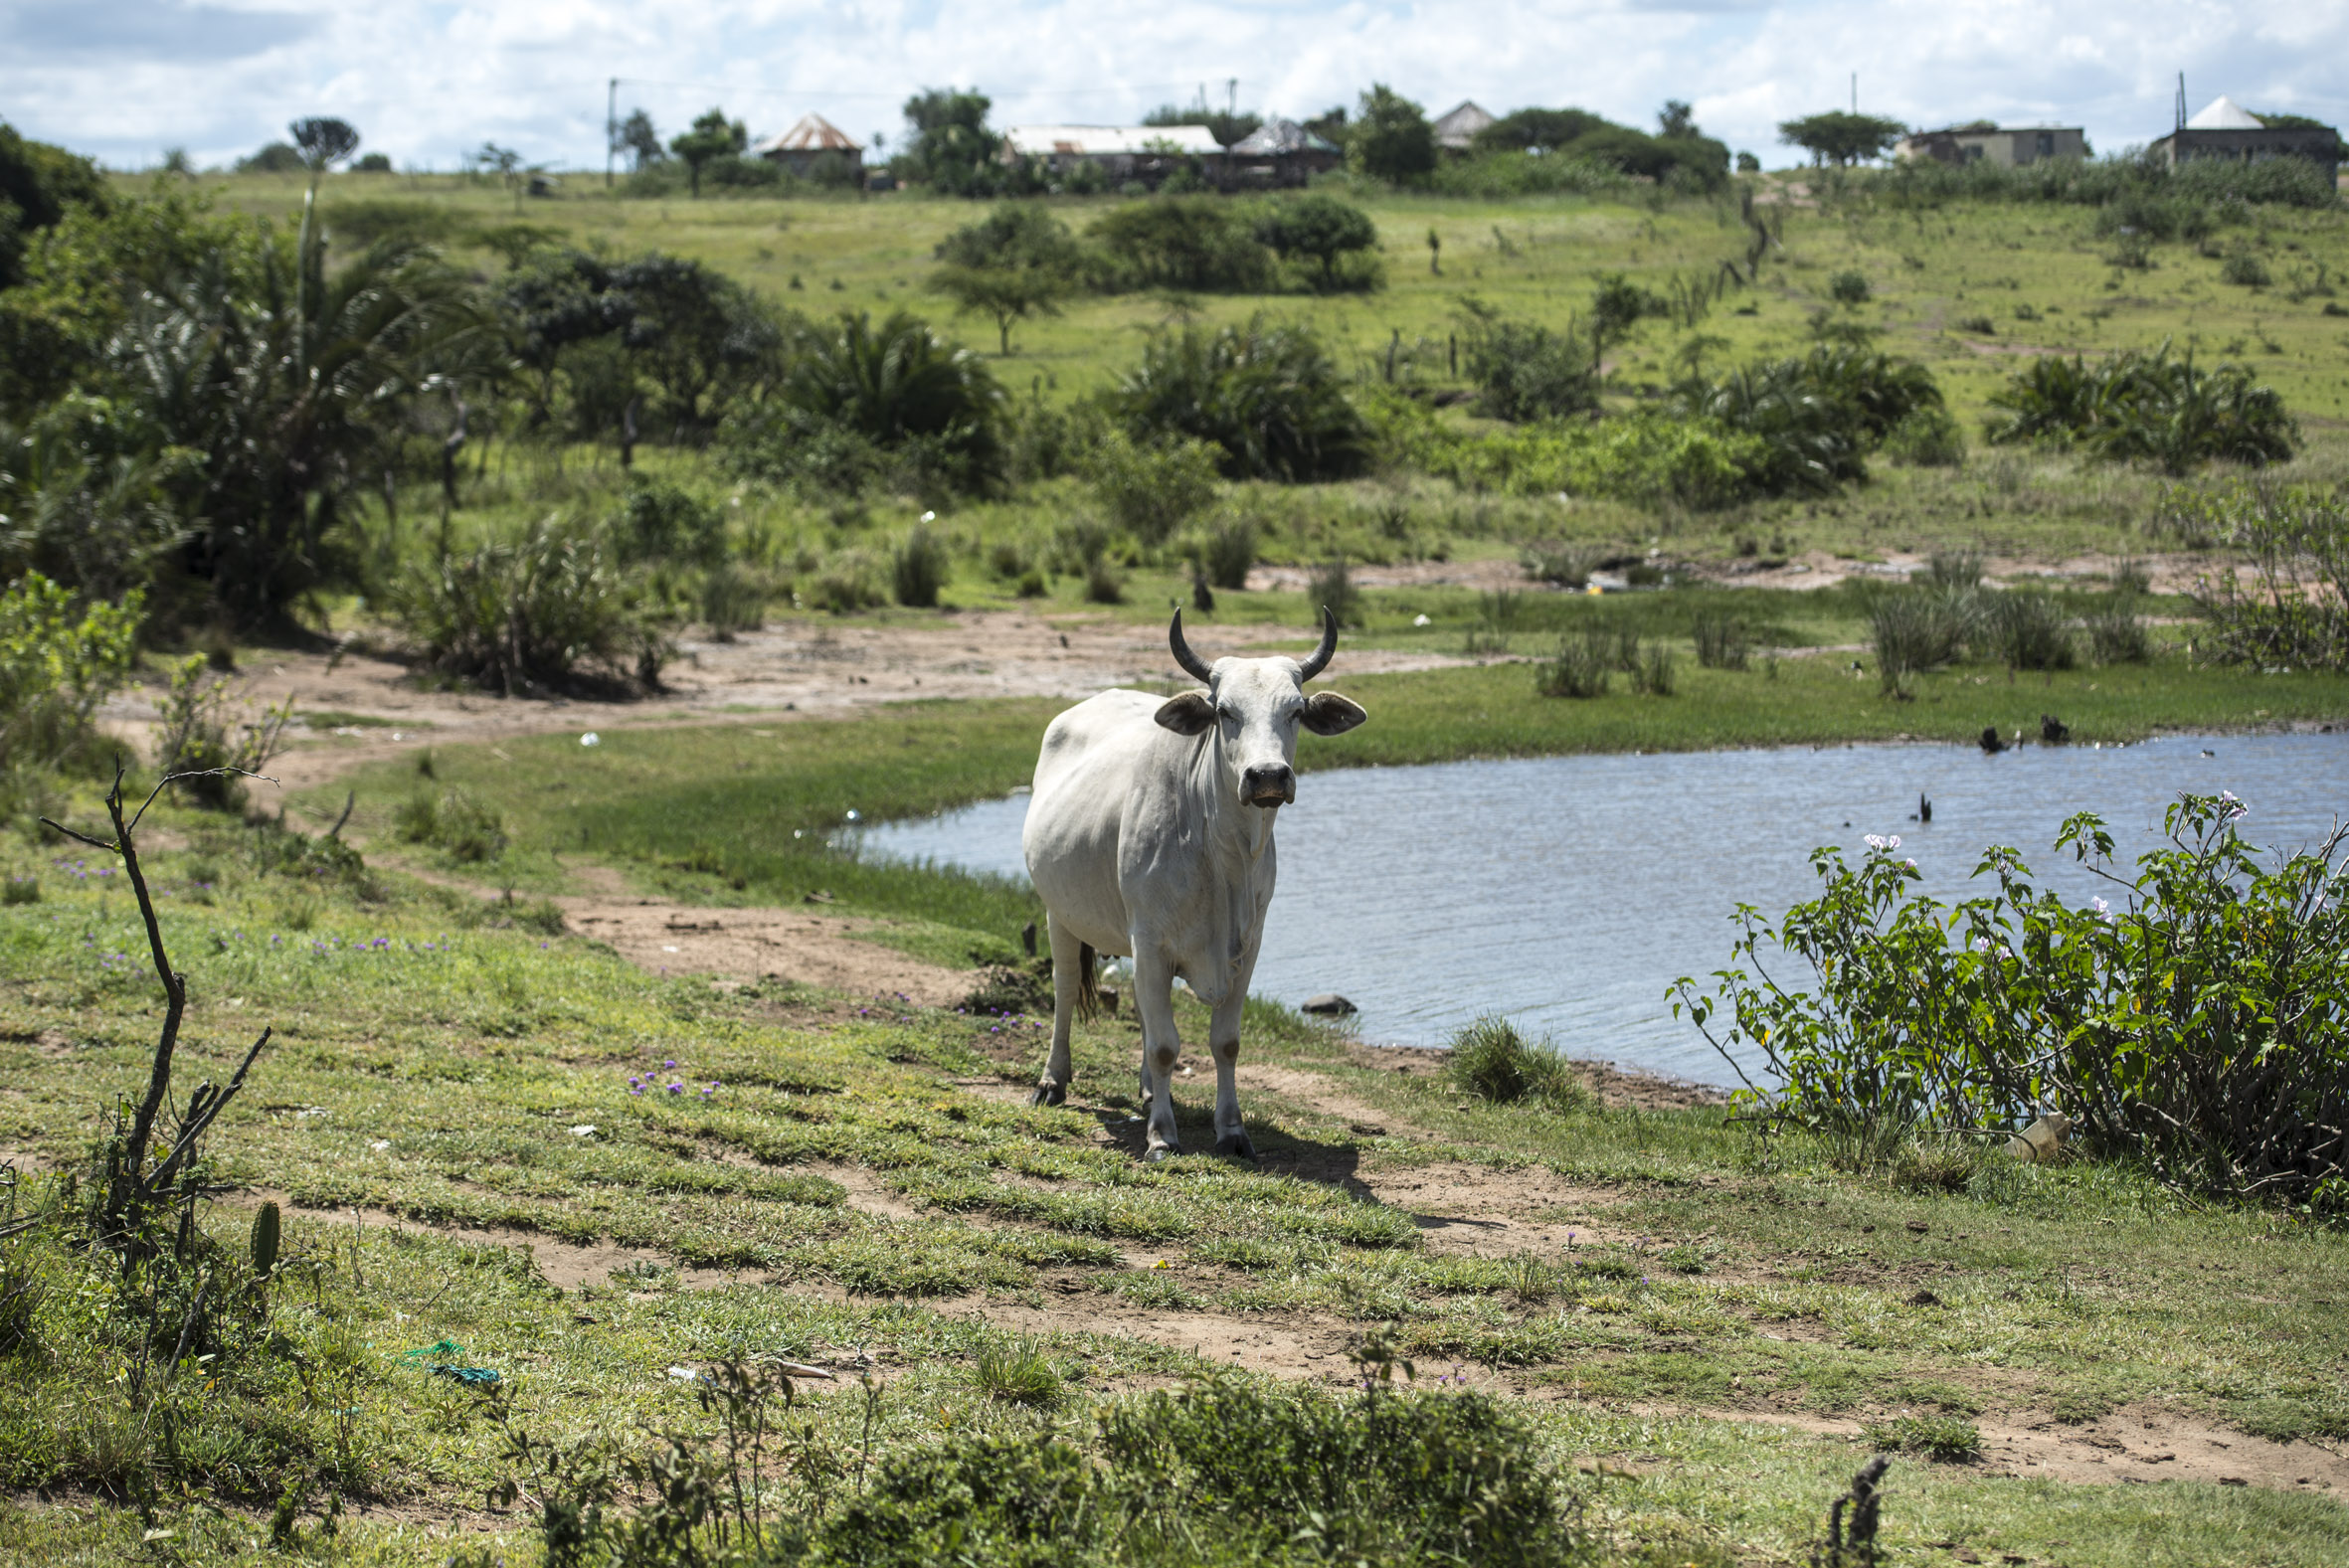 Land, slavery and cattle matter: To move forward, we need to look back